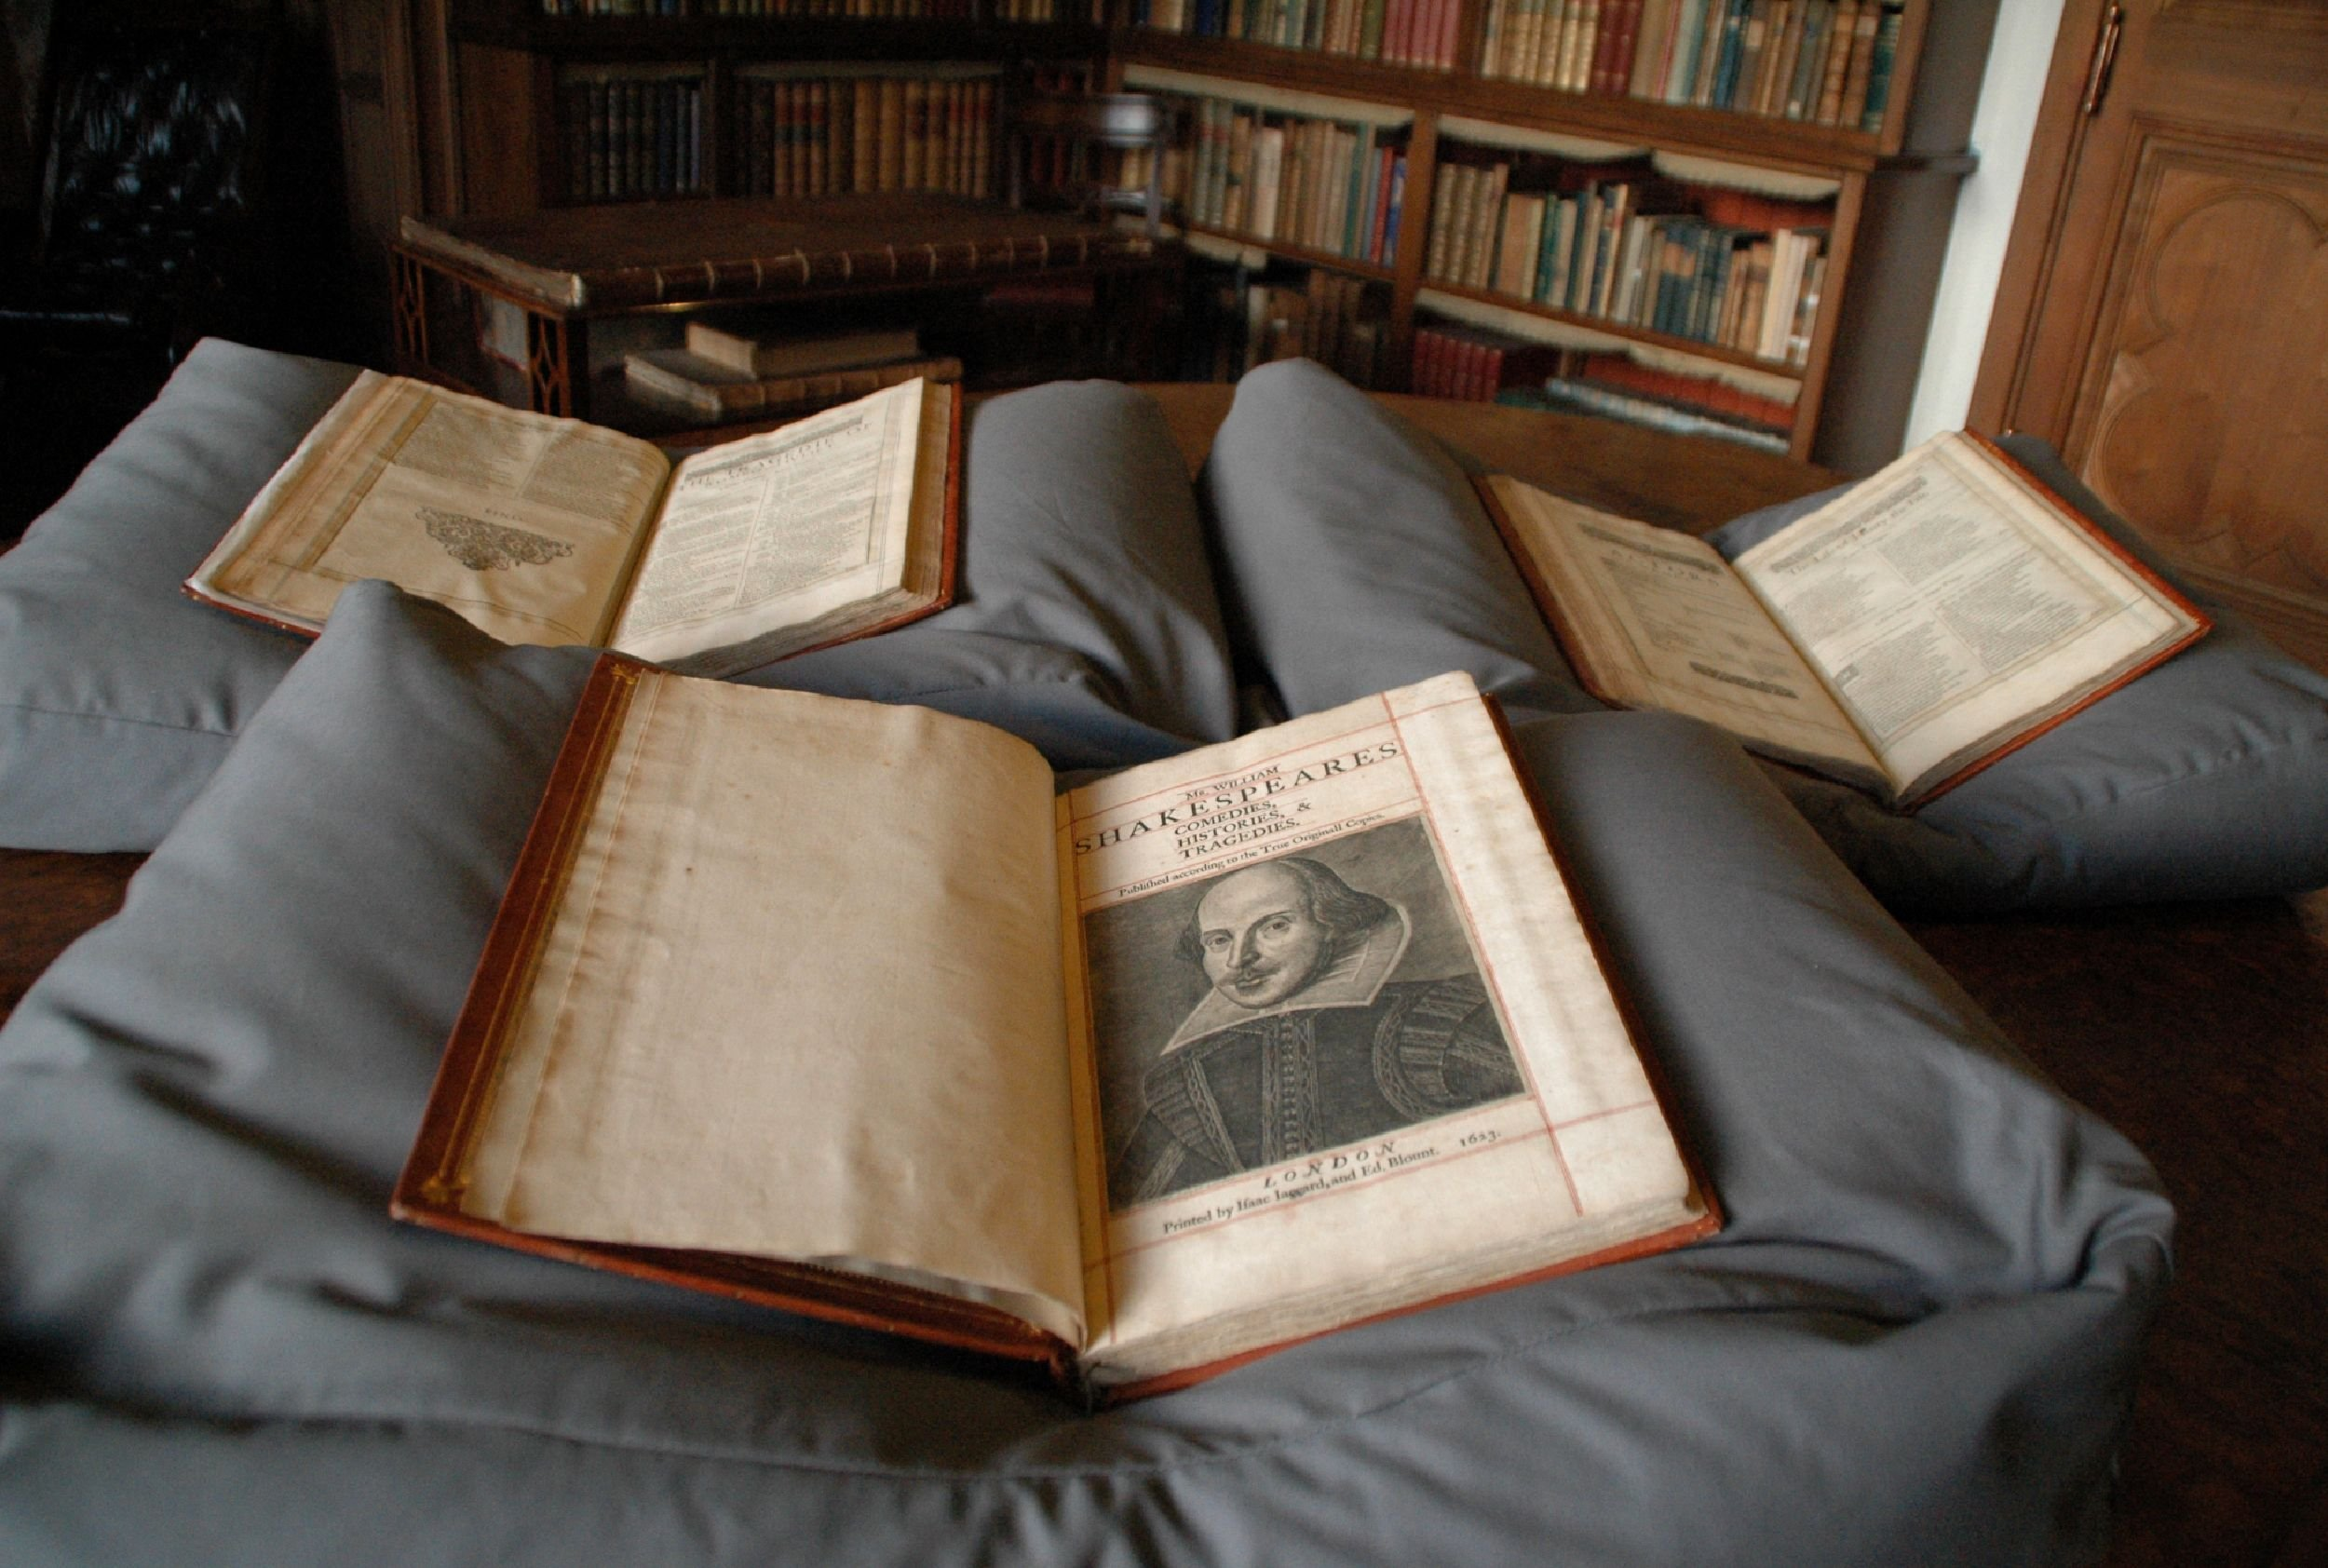 An extremely rare Shakespeare book has been discovered on a remote Scottish Island